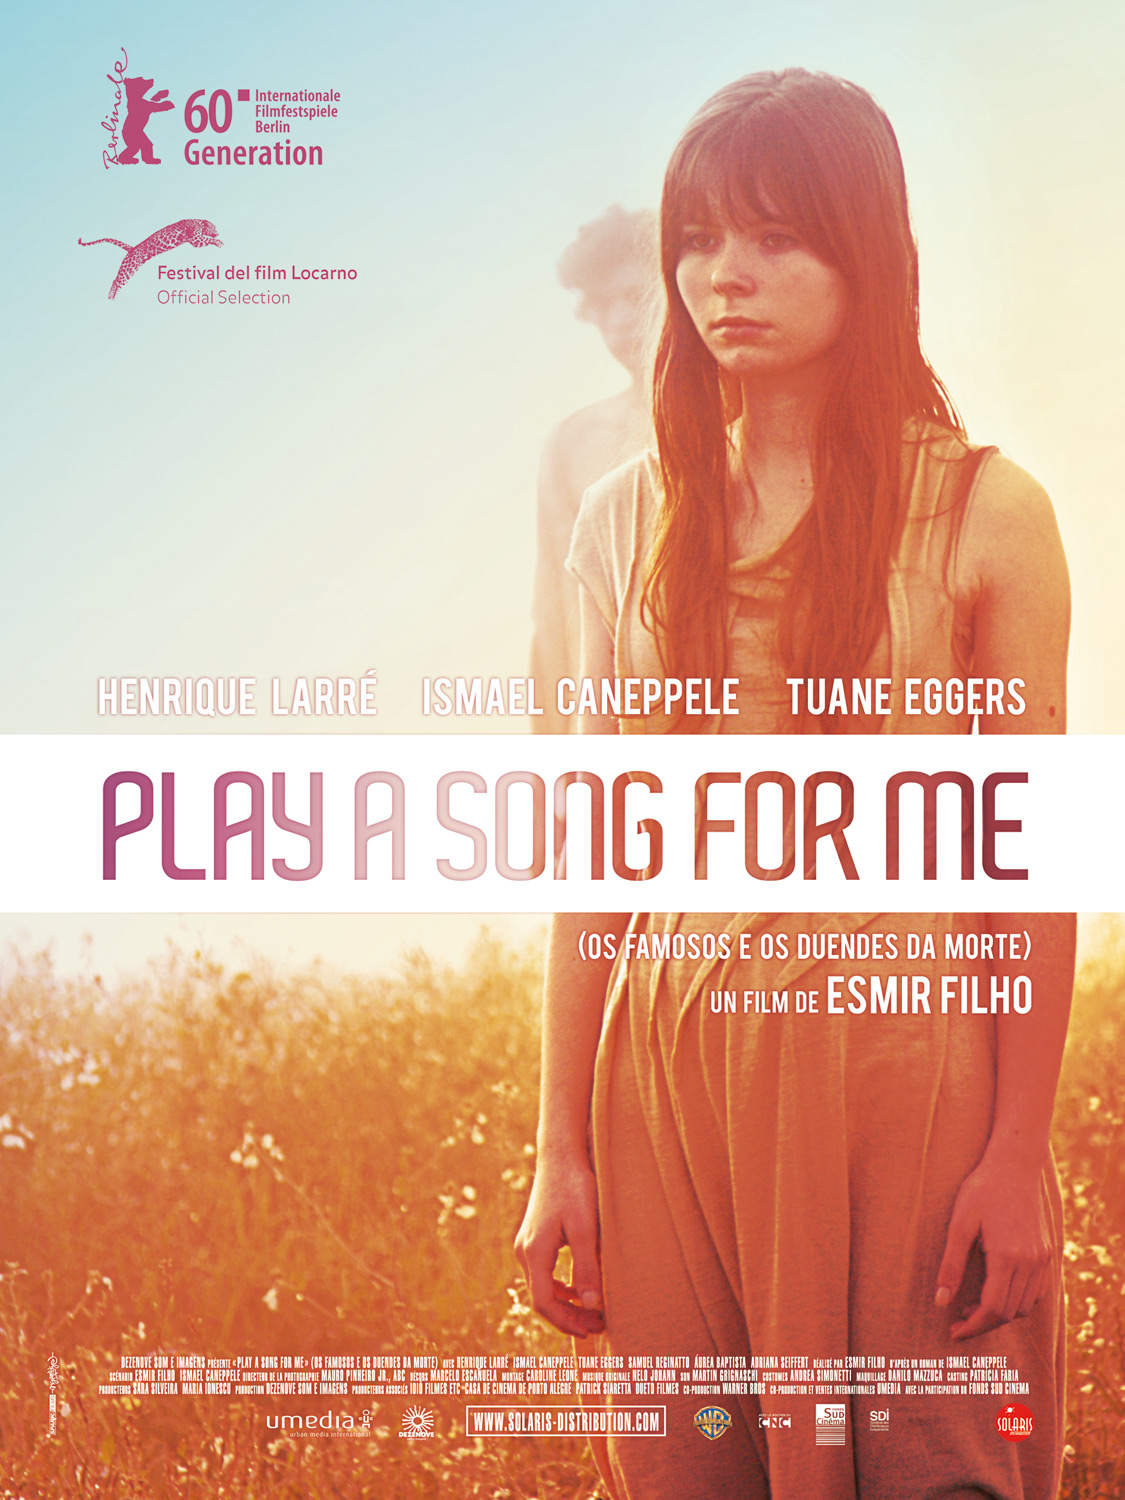 another side movie play a song for me os famosos e os duendes da